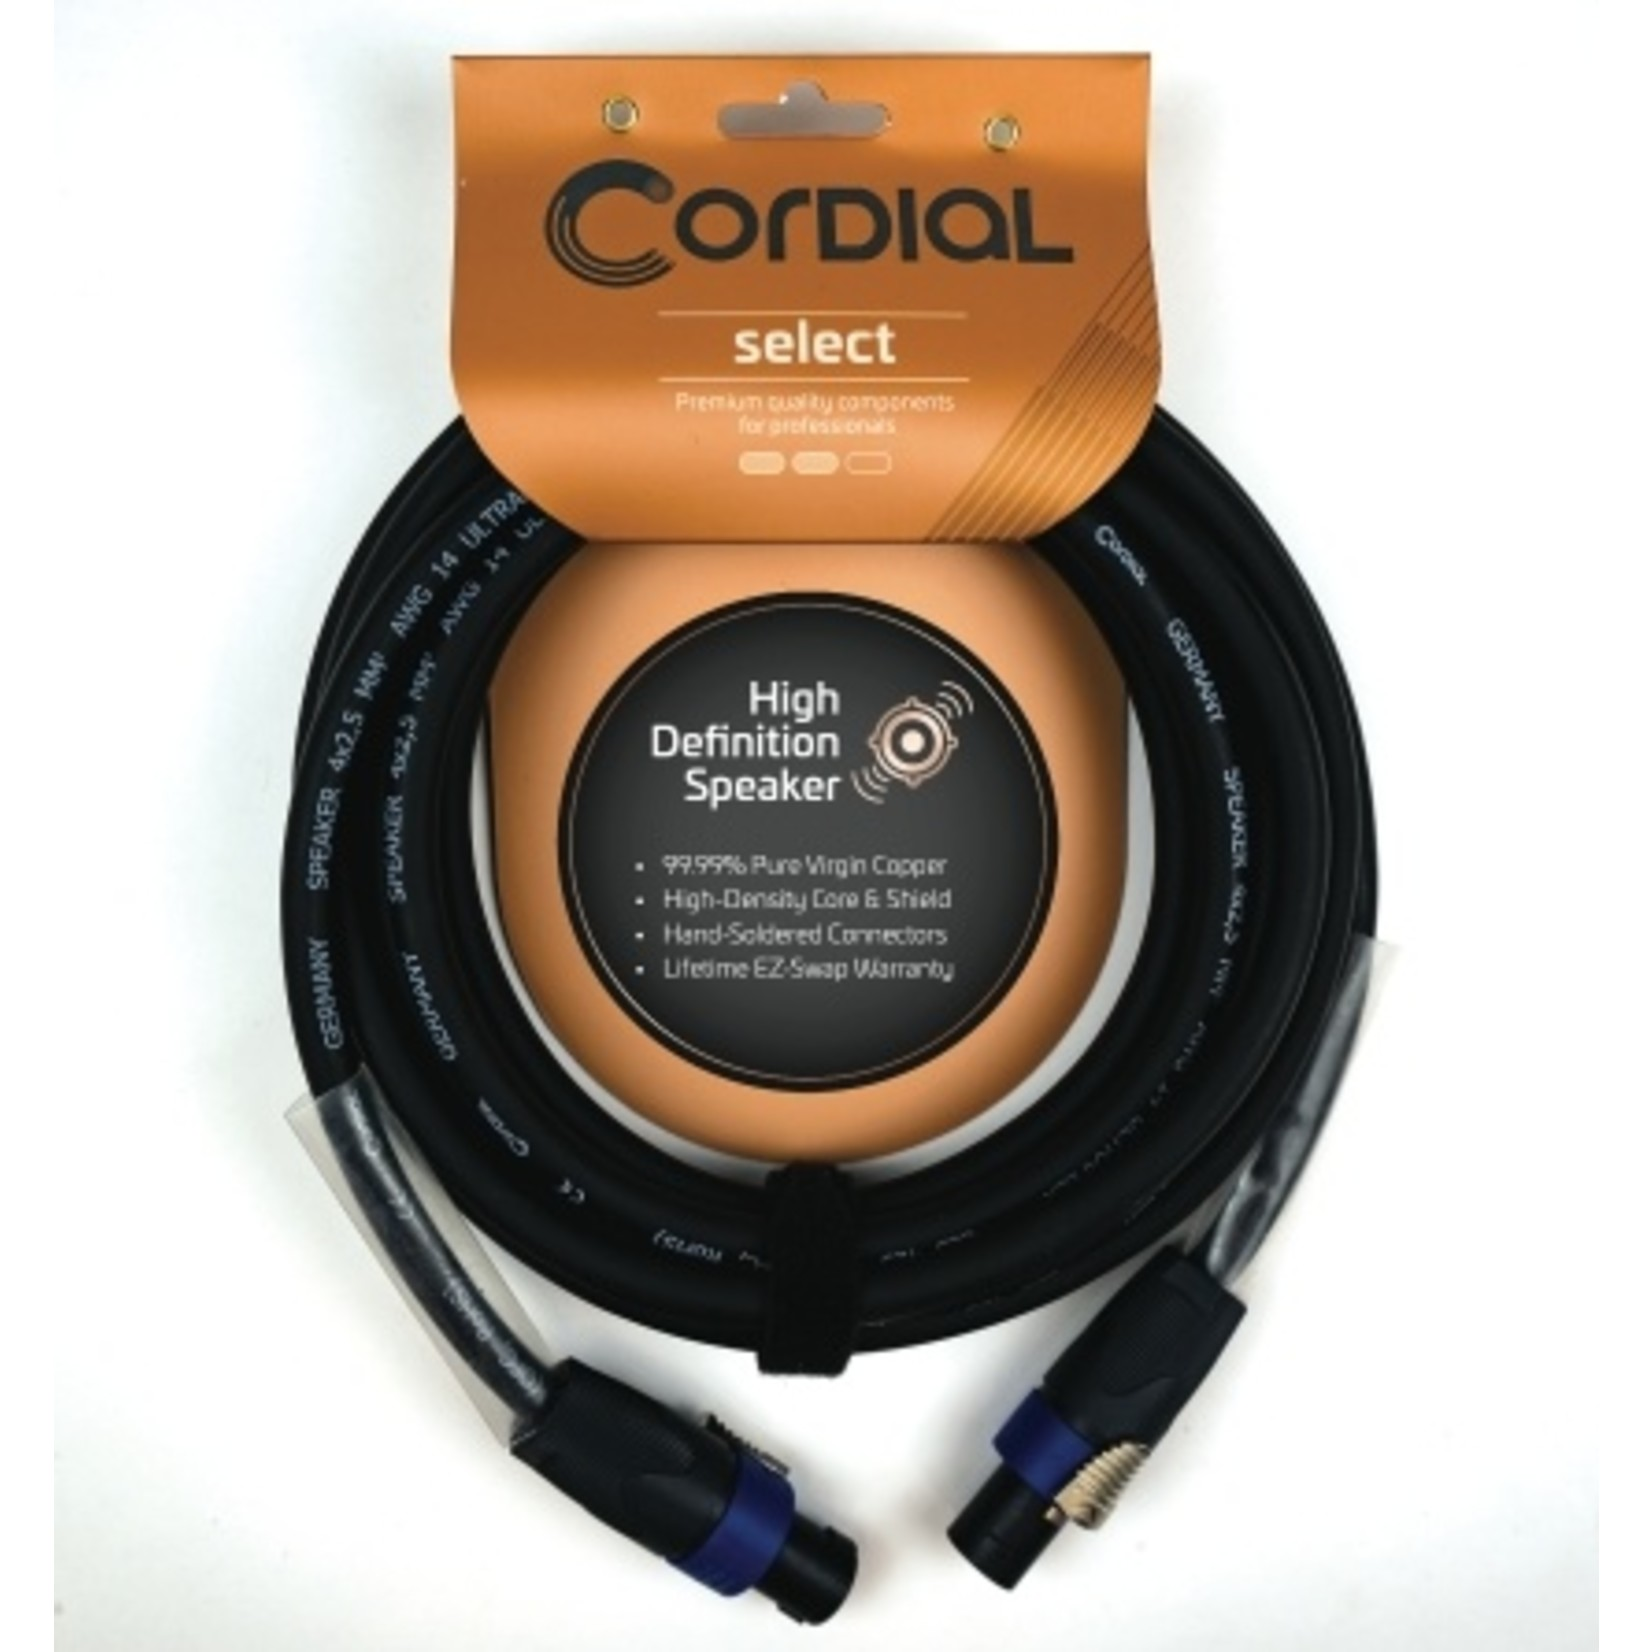 Cordial Cables Cordial Cables Premium Speaker Cable with speakON to speakON Connectors, Select Series - Premium 4-Pole, 2.5mm² Gage Selecter, 16-Foot Cable